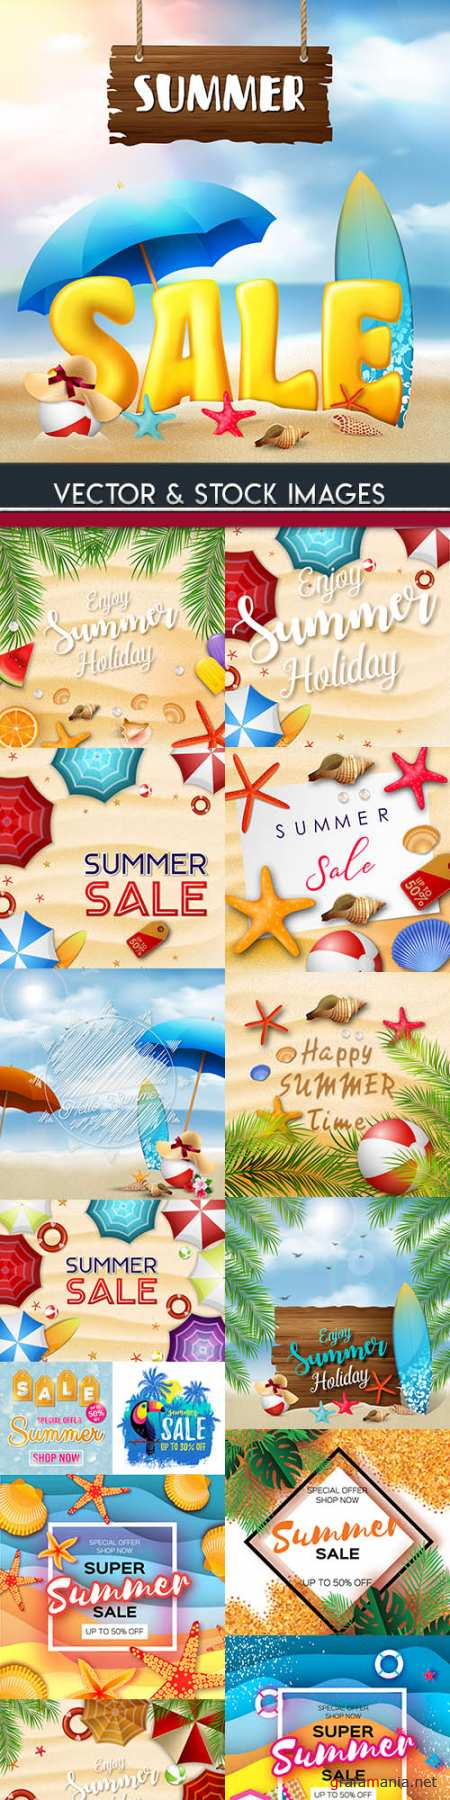 Summer sales and discount holiday banner illustrations 8